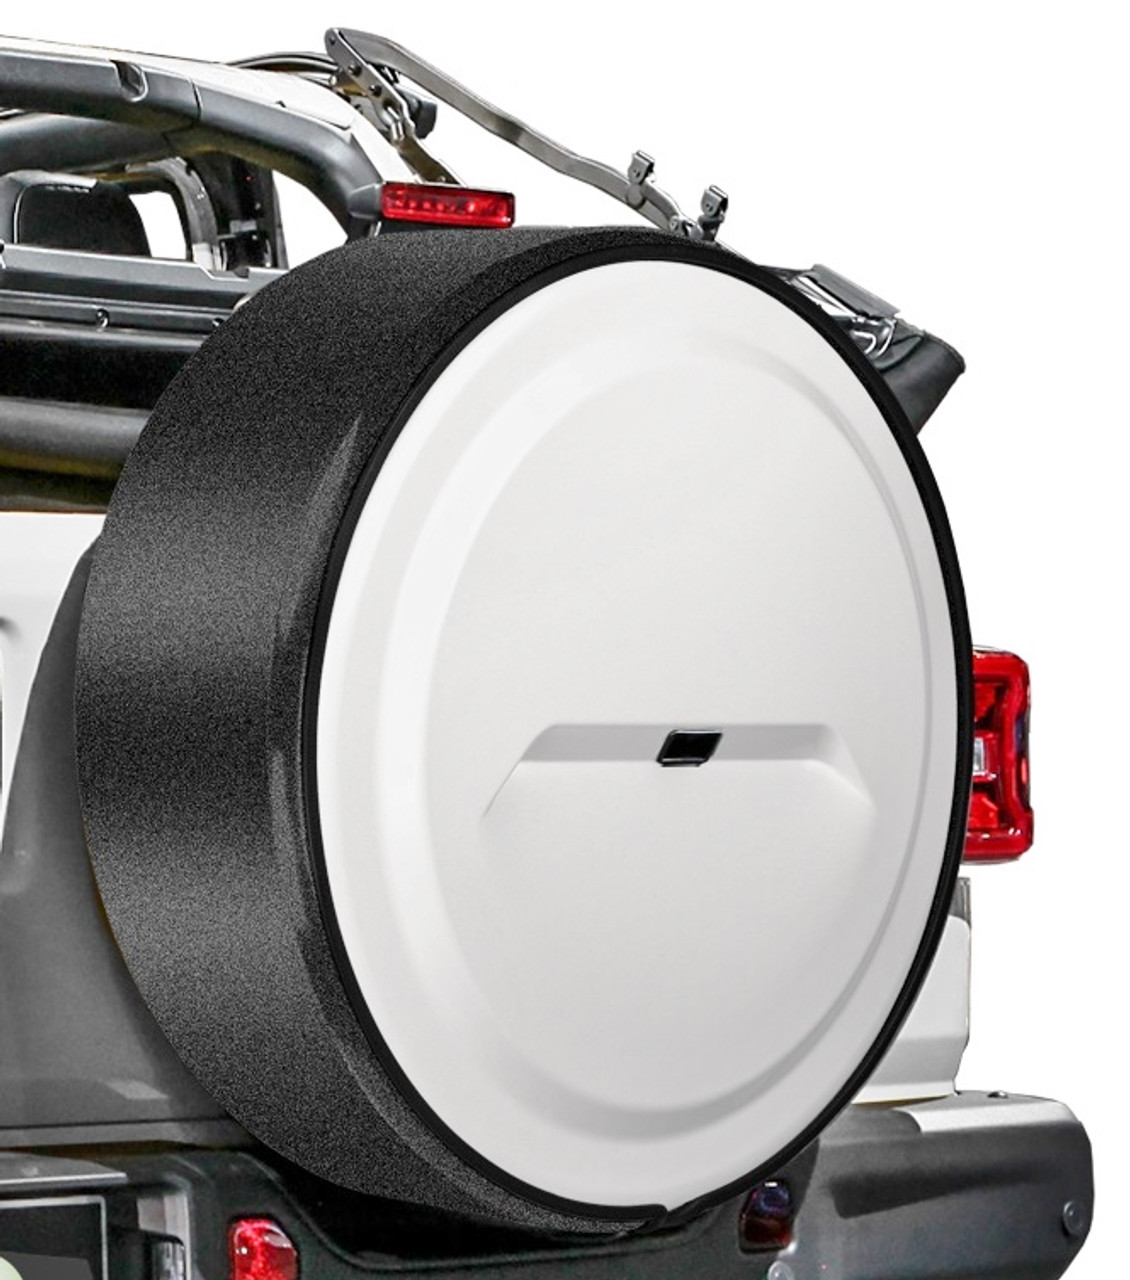 MasterSeries Lockable Hard Tire Covers by Boomerang - 2018 ...